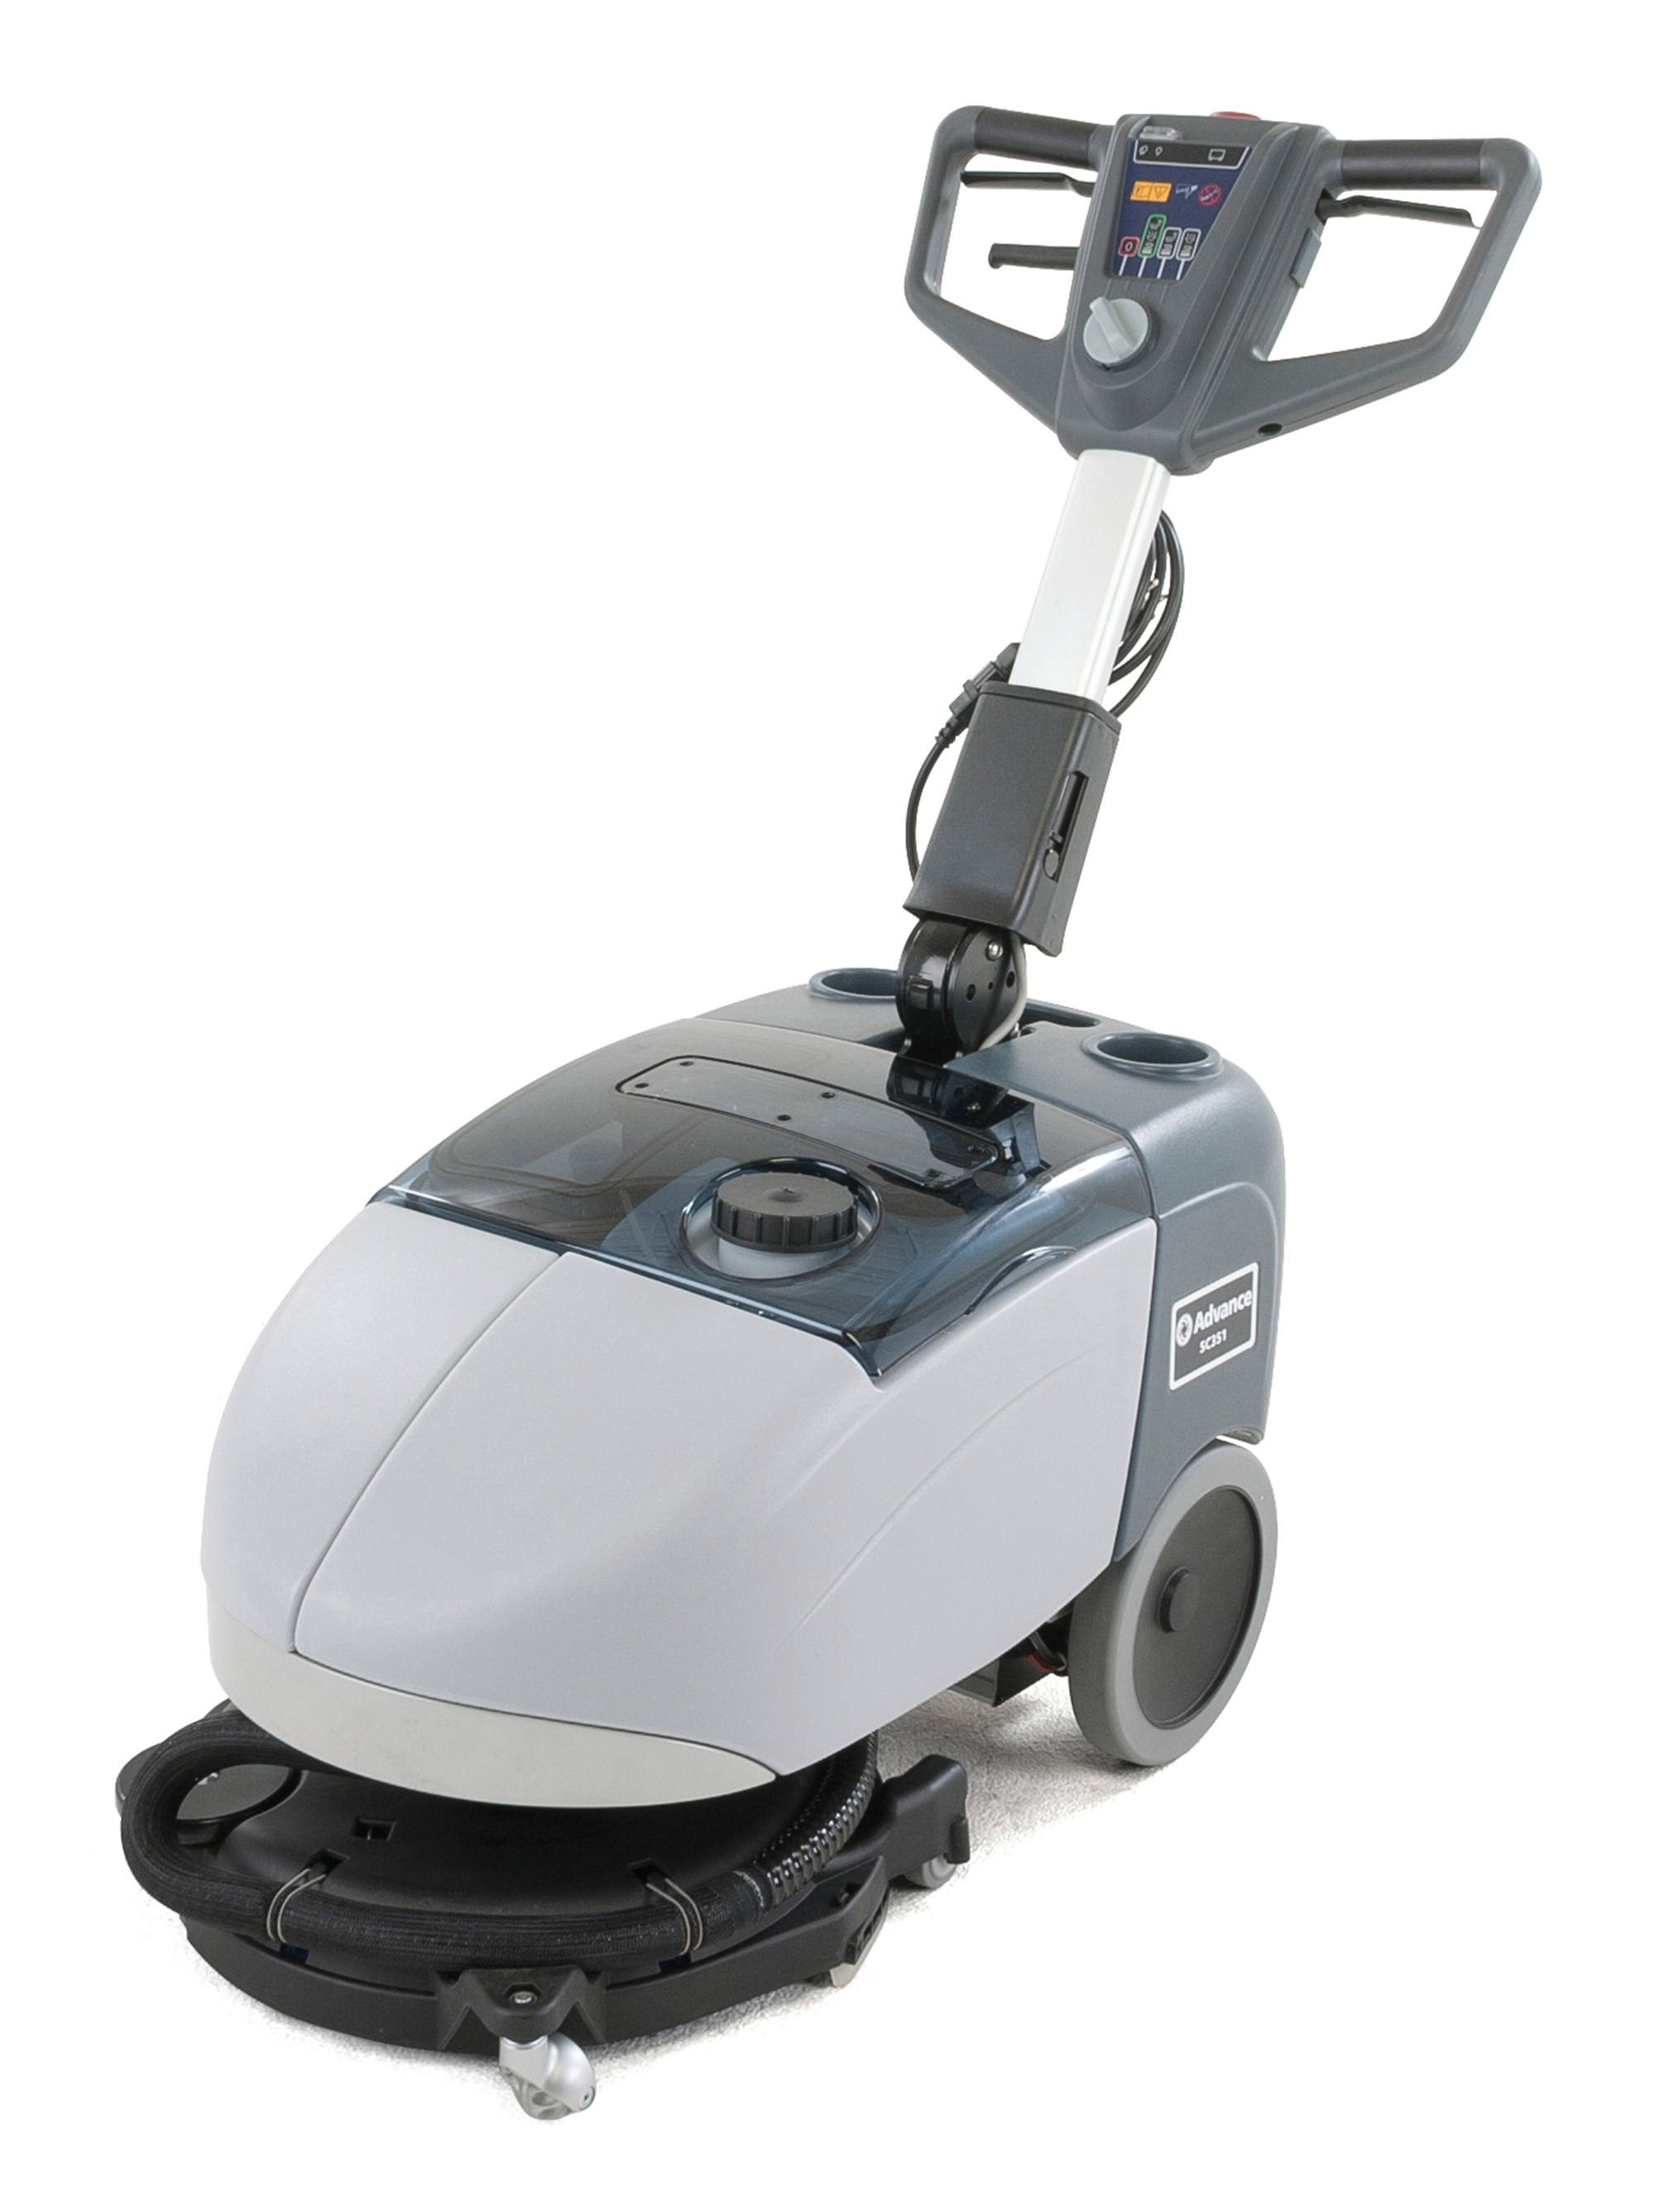 Product, Floor Cleaning, Scrubbers, Walk-behind Scrubbers, Nilfisk, SC351